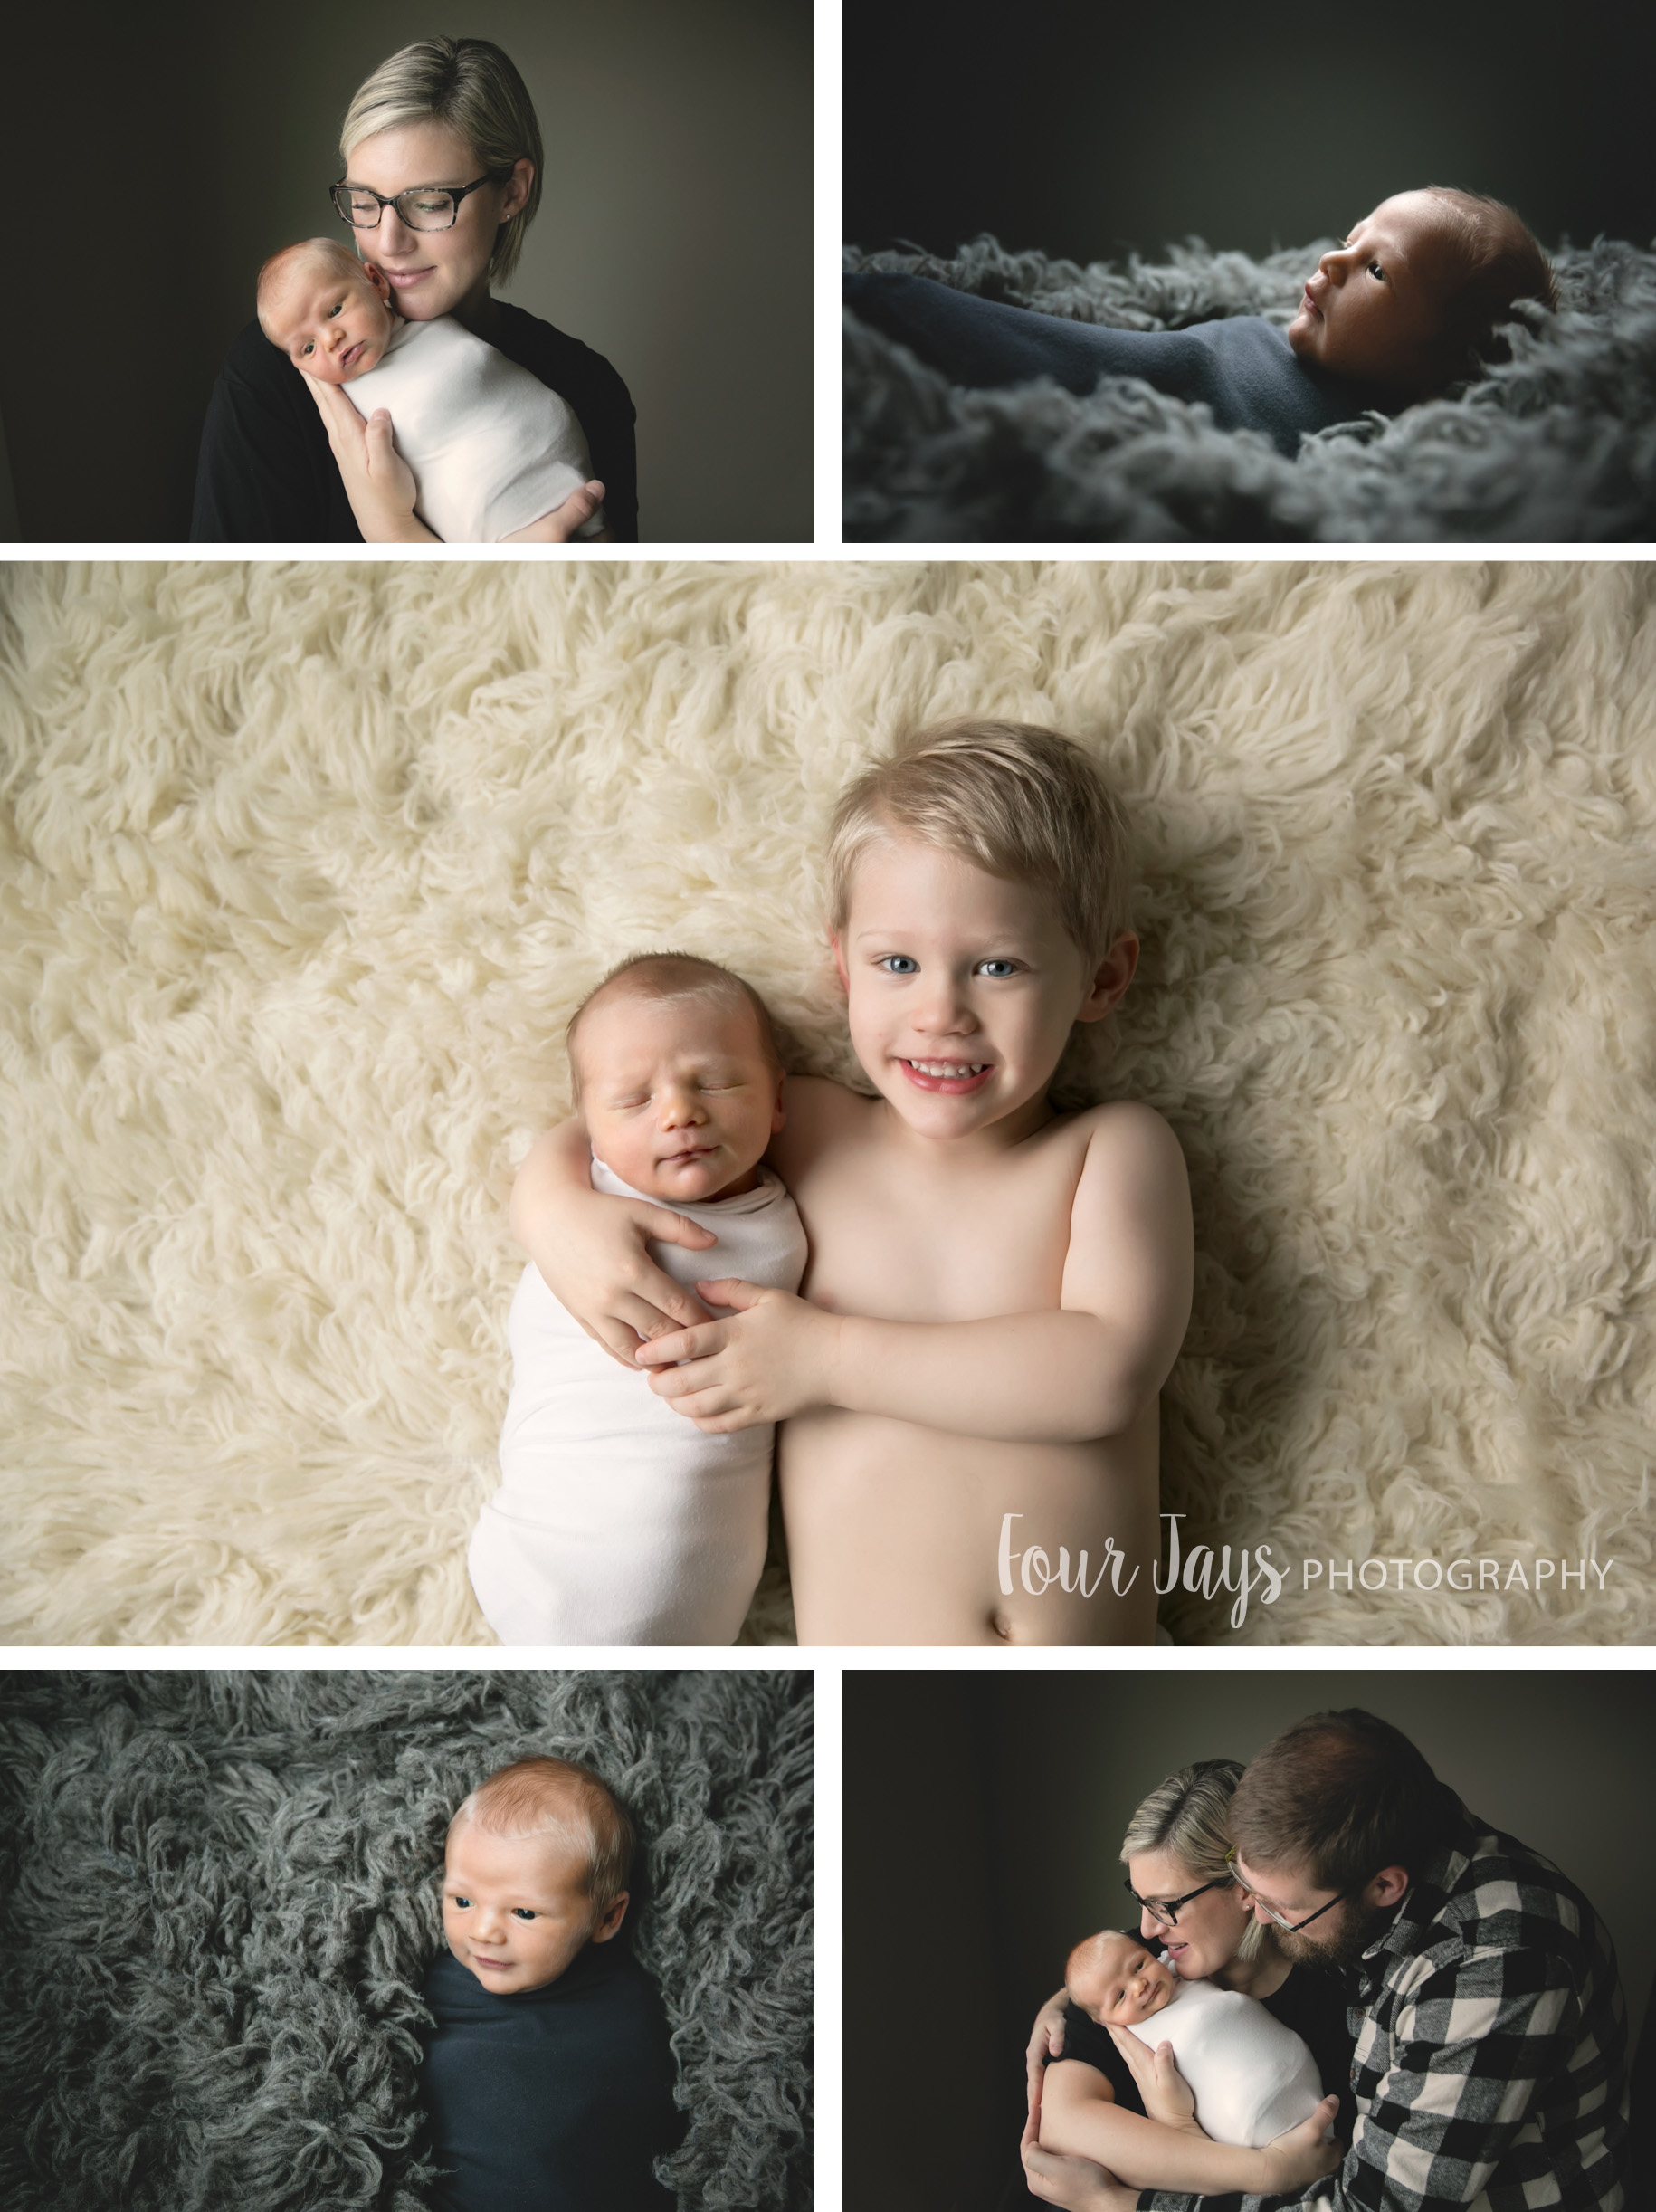 Best Newborn Photographer Hillsboro Oregon 2018 wm.jpg